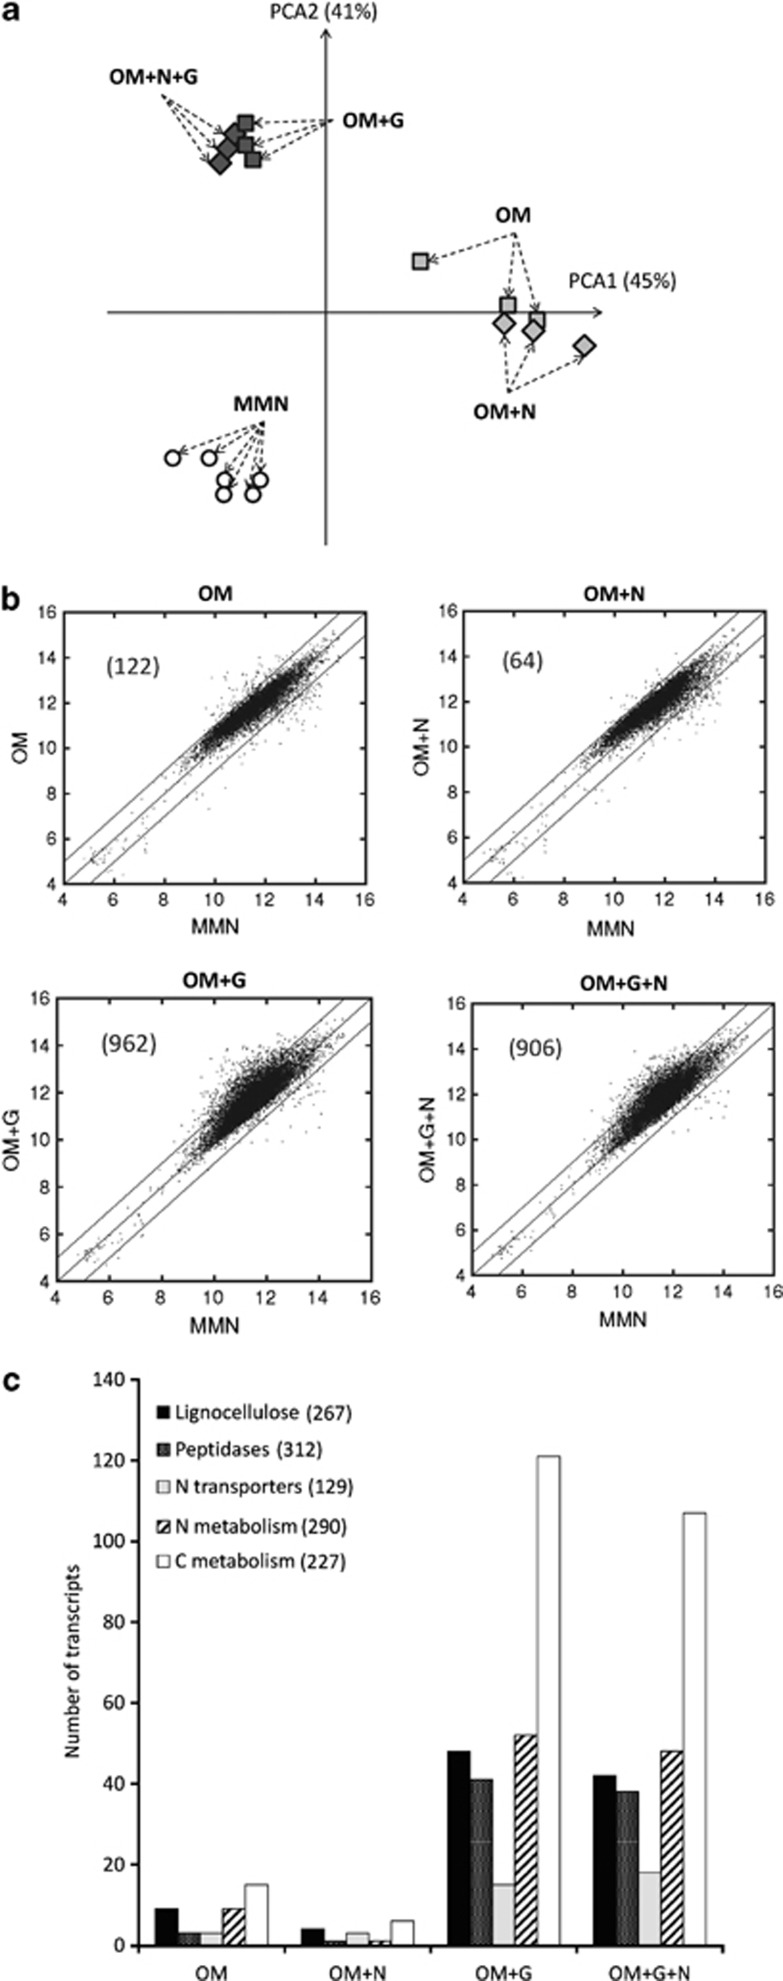 Transcriptional responses in the mycelium of P. involutus when grown in organic matter (OM) extracts, with or without glucose (G) and with or without NH 4 + (N) as shown by microarray analysis. ( a ) Principal component analysis (PCA) was performed on the expression levels of 10 443 transcripts out of 11 528 analyzed on the DNA microarray that had a false-discovery rate of q ⩽0.01. MMN, minimum Melin–Norkrans (that is, mineral nutrient) medium. n =3, except for MMN ( n =6); each point in the PCA represents a replicate. ( b ) Differentially expressed genes in OM versus MMN. The scatter plots show the intensity of the normalized and log 2 -transformed hybridization signals. The diagonal line ( y = x ) shows genes with near identical hybridization signals. The lines at y = x +1 and y = x −1 correspond to a log 2 relative expression between the OM substrates and MMN of +0.5 and −0.5, respectively. The numbers of genes upregulated more than twofold ( q ⩽0.01) are shown in parentheses. ( c ) The numbers of transcripts in various functional categories that were upregulated more than twofold ( q ⩽0.01) in pairwise comparisons of transcription levels after growth in media containing OM versus MMN. The total numbers of transcripts annotated to each functional category among the 11 528 probe sequences are given in parentheses. The significance of the enrichments are shown in Supplementary Table S3 .